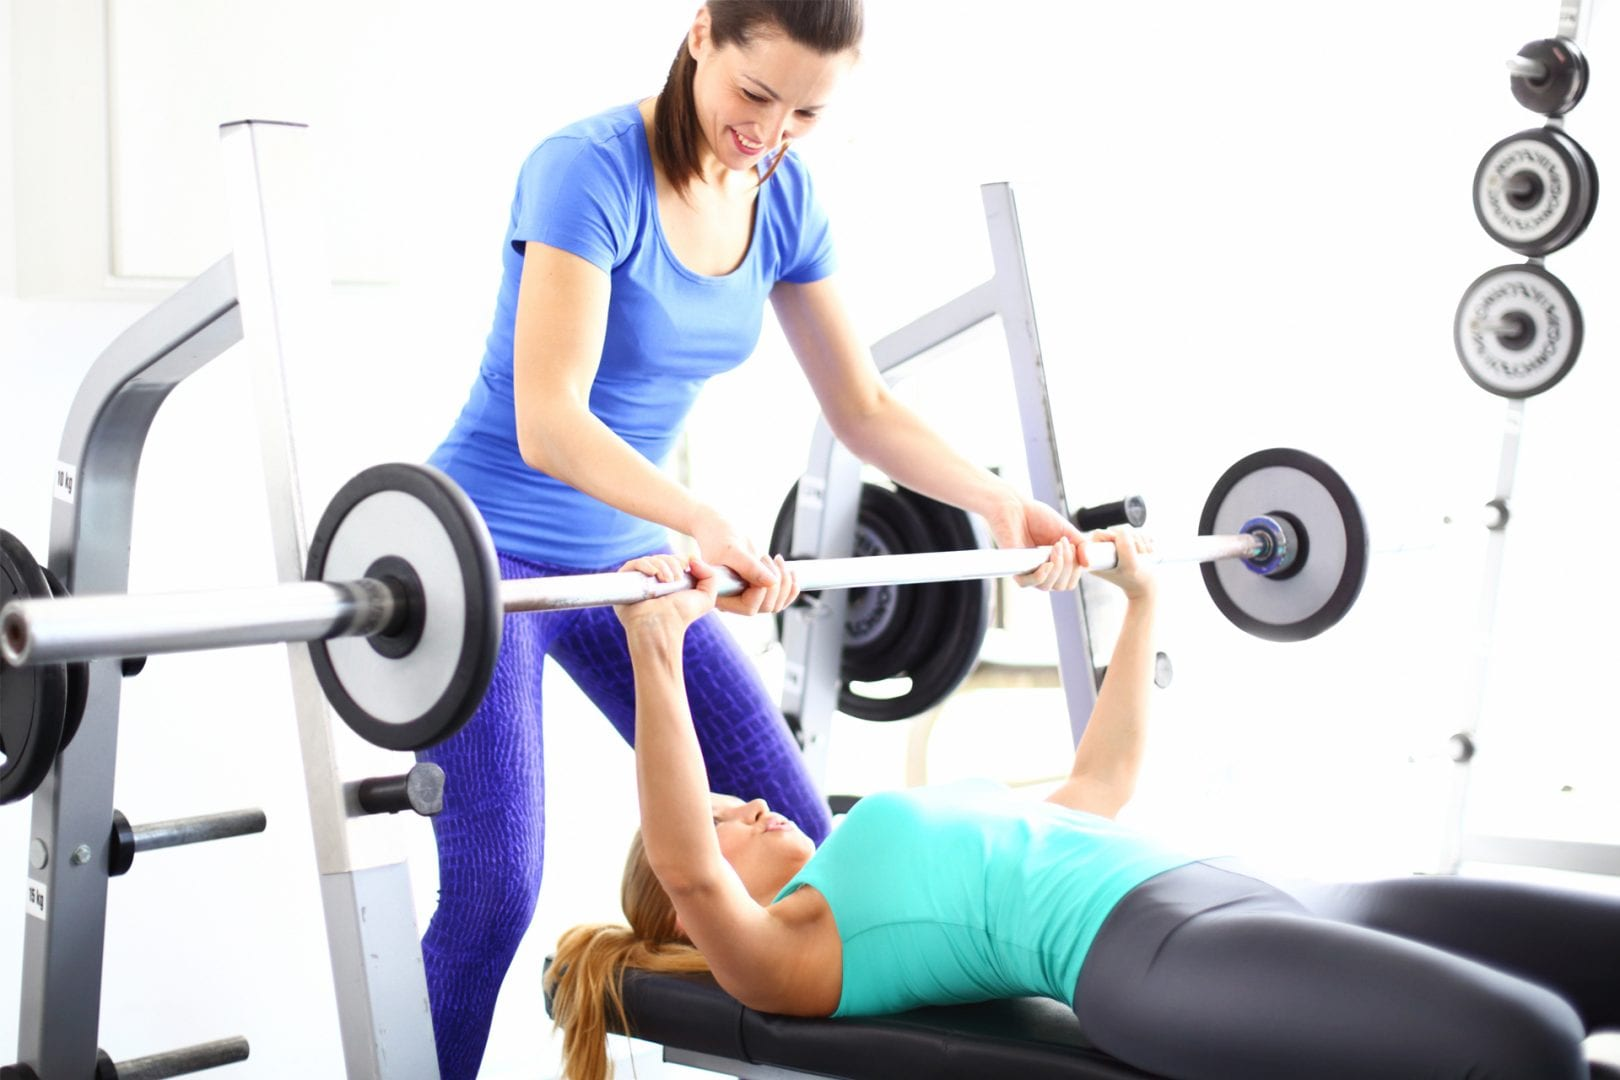 personal-trainer-assisting-female-gym-member-bench-press-at-fitness-center